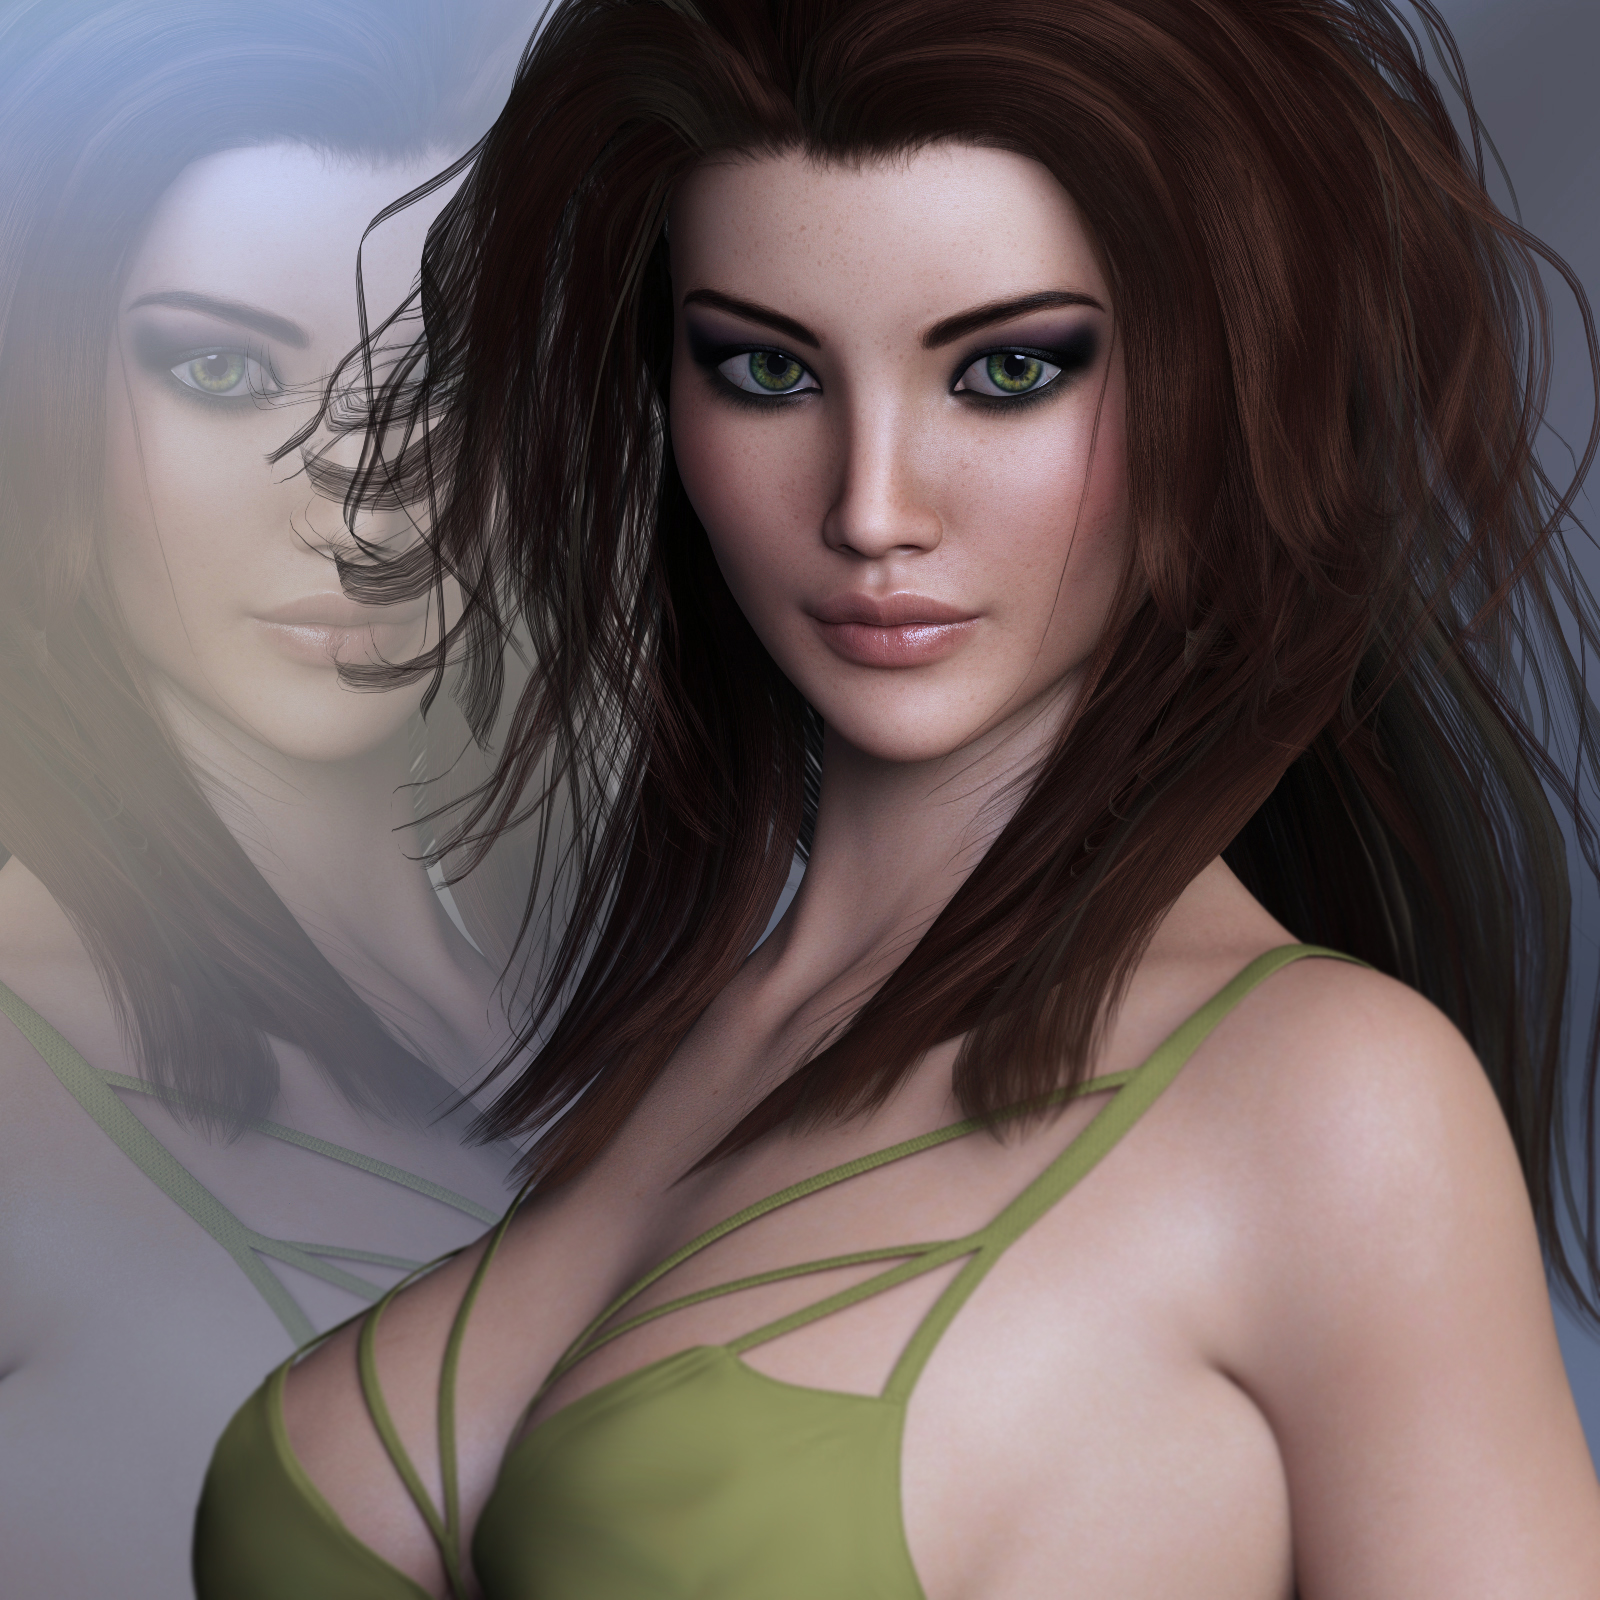 3DS Darby for Genesis 3 Female